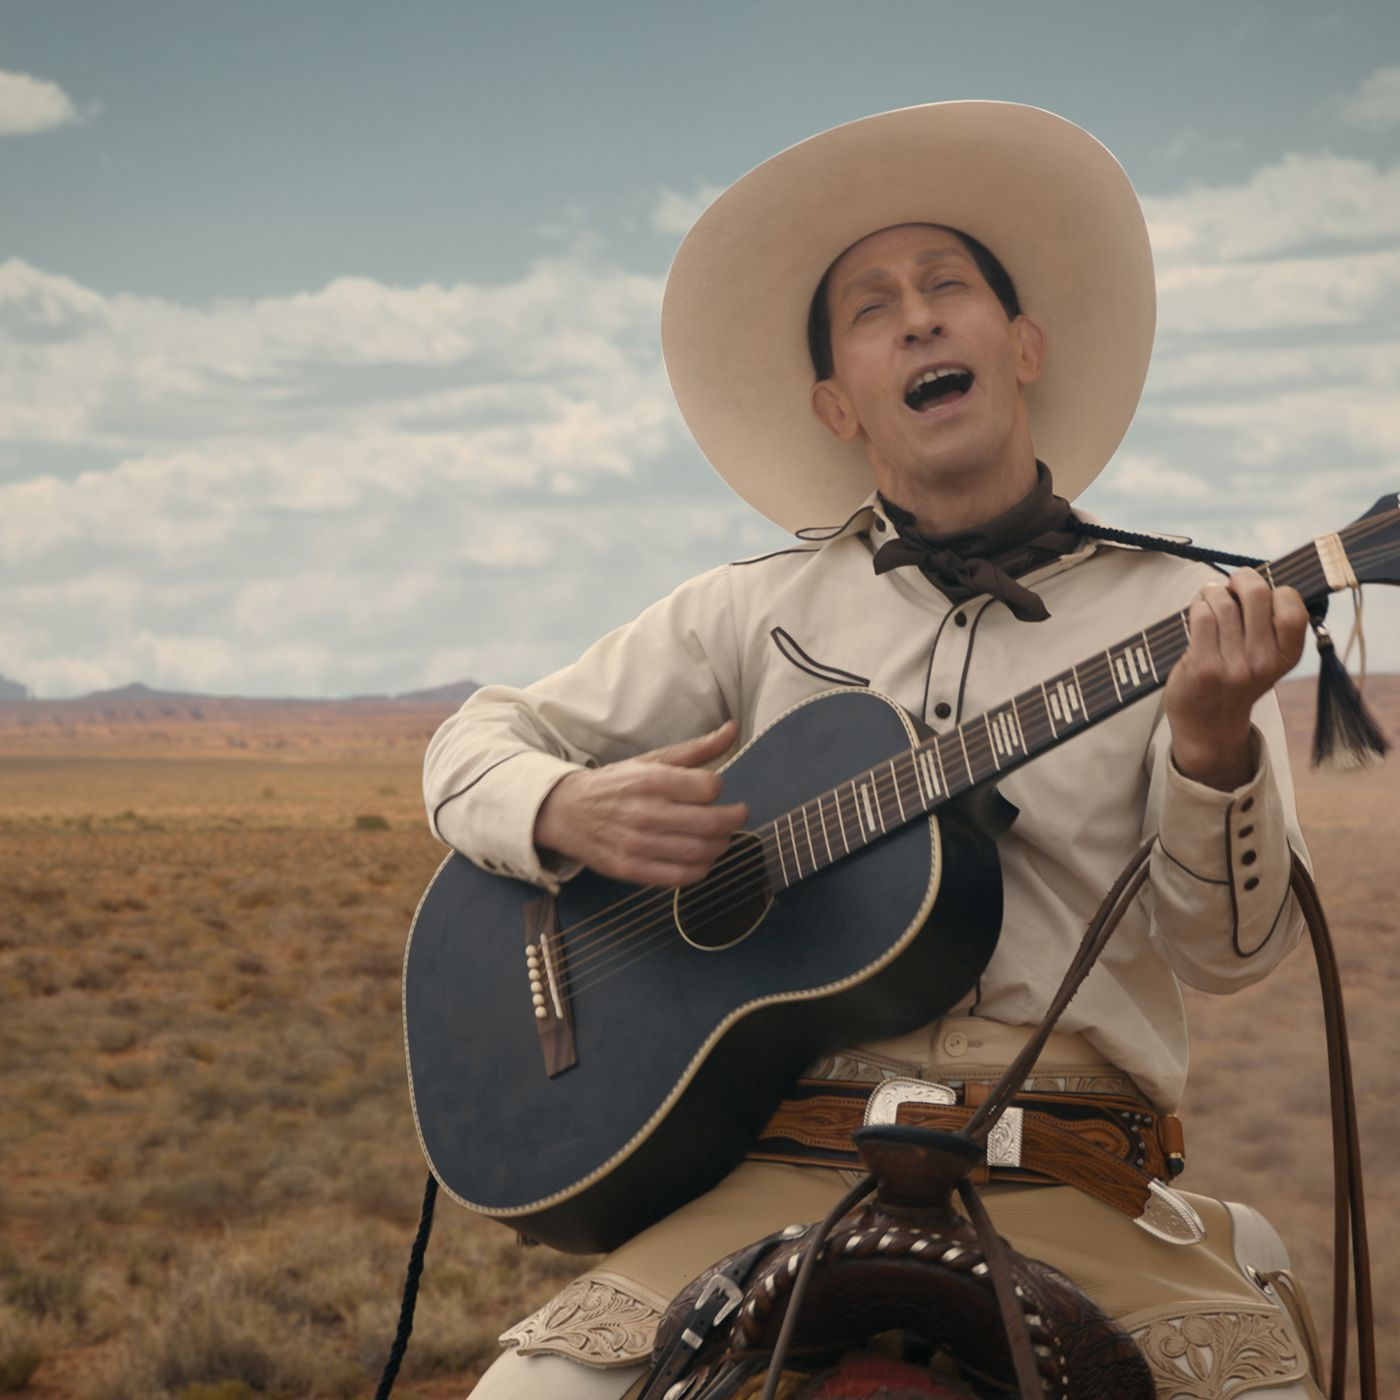 The Ballad Of Buster Scruggs Review An Old West Folktale With Coen Twist Vox